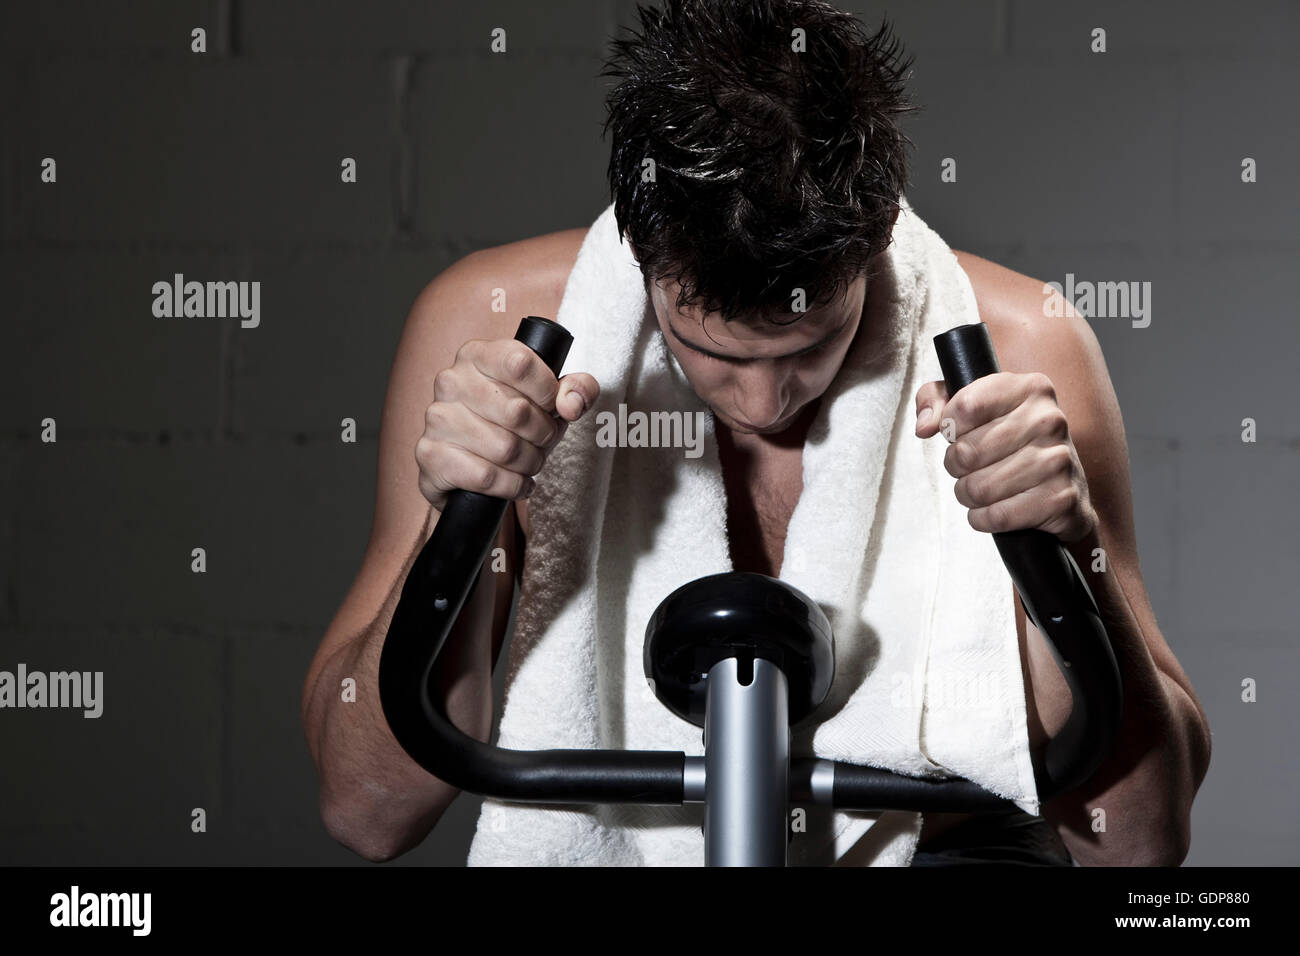 Man using exercise machine looking down - Stock Image